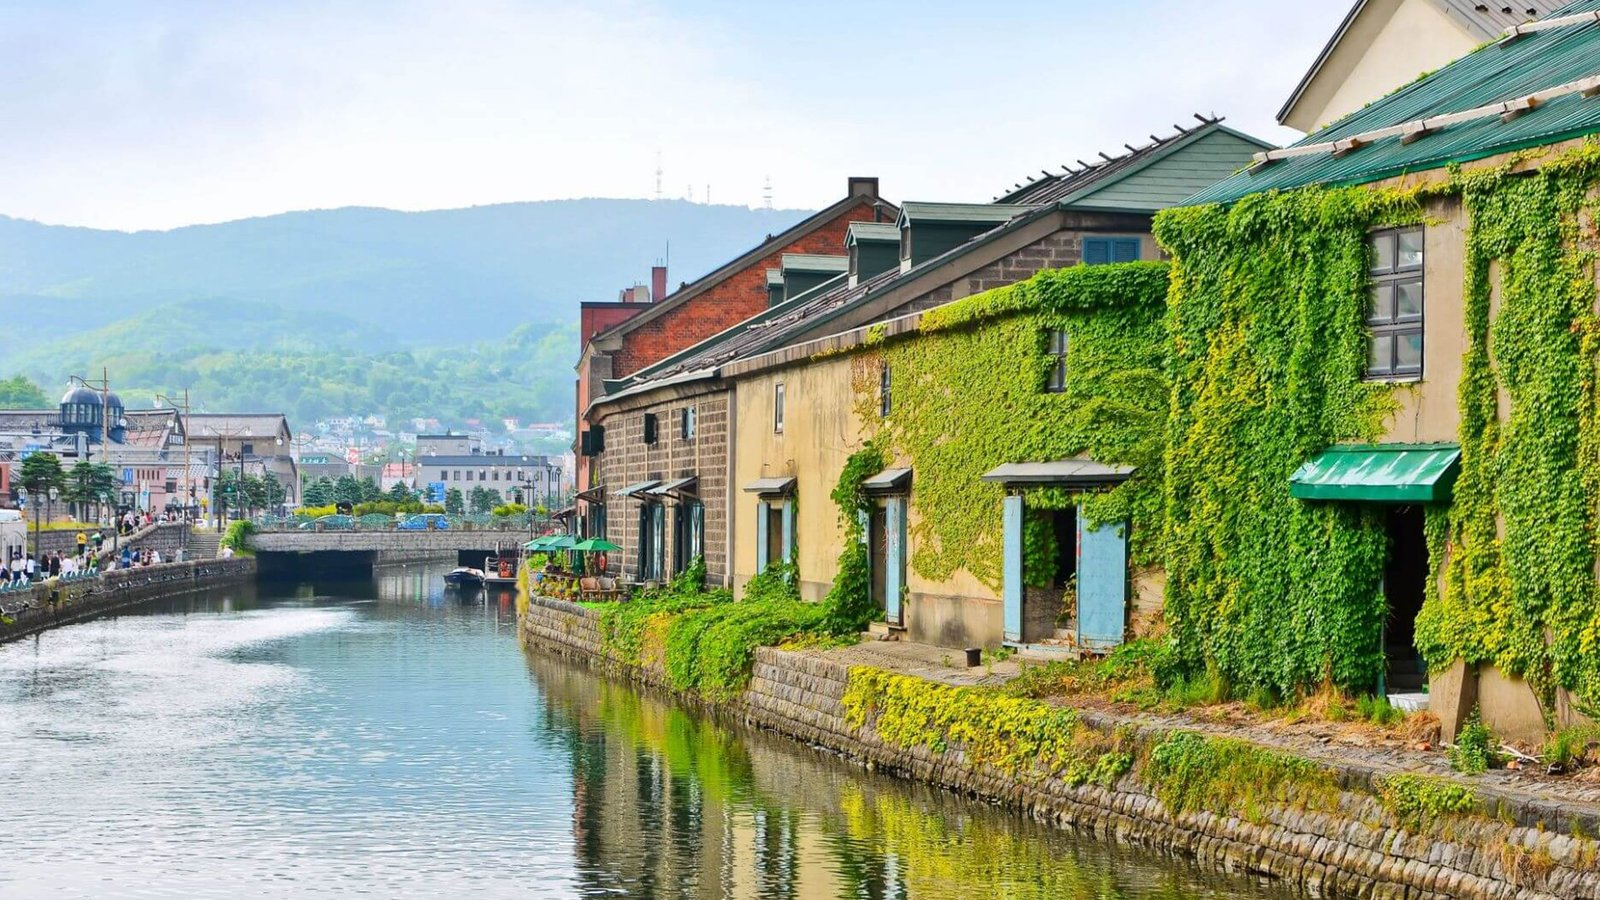 Otaru Canal and old brick wearhouses, Hokkaido Japan